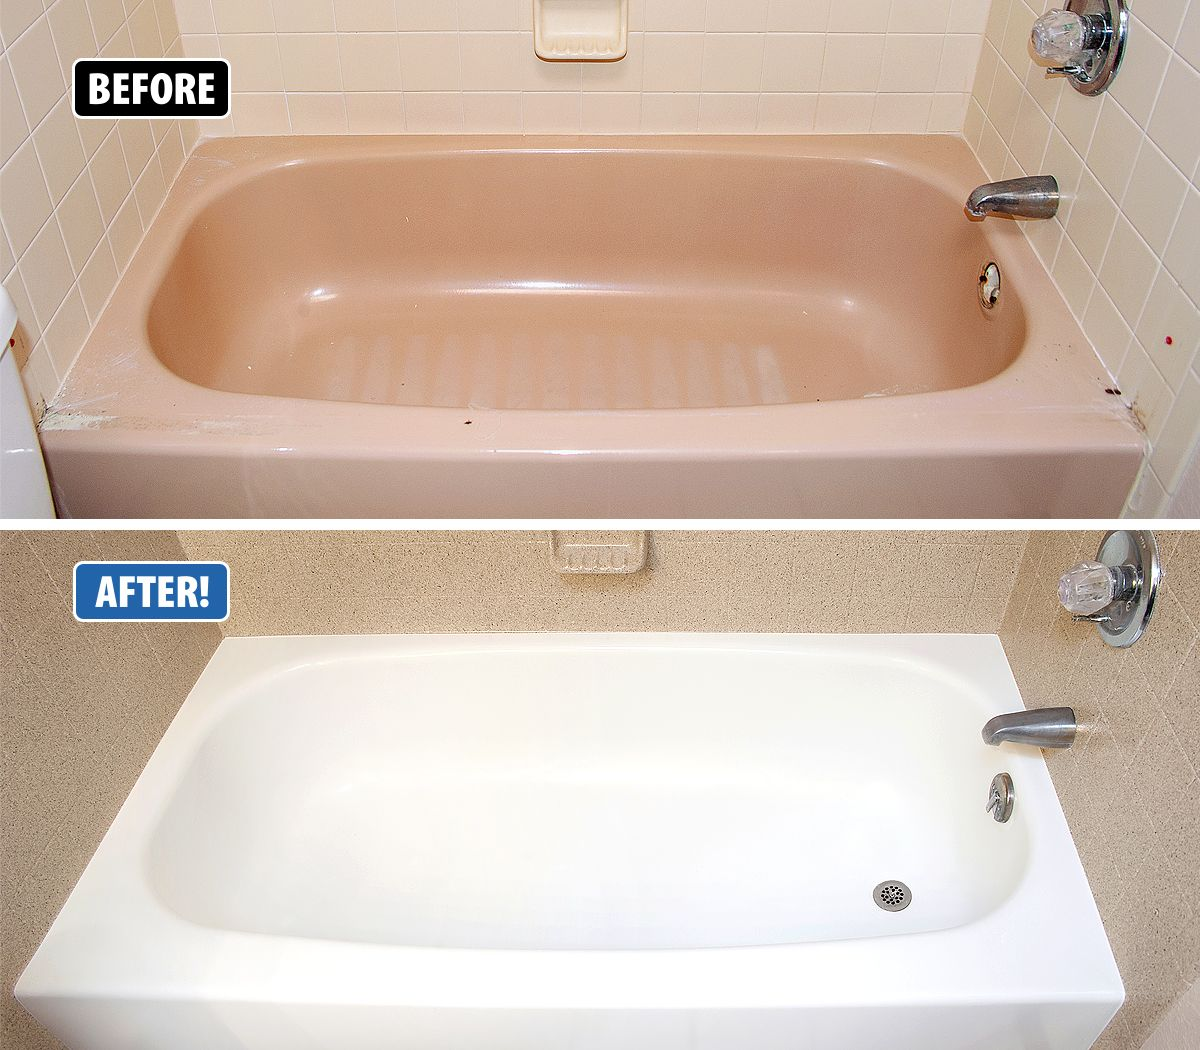 How To Refinish Your Bathtub For 50 Bathtub Remodel Refinish